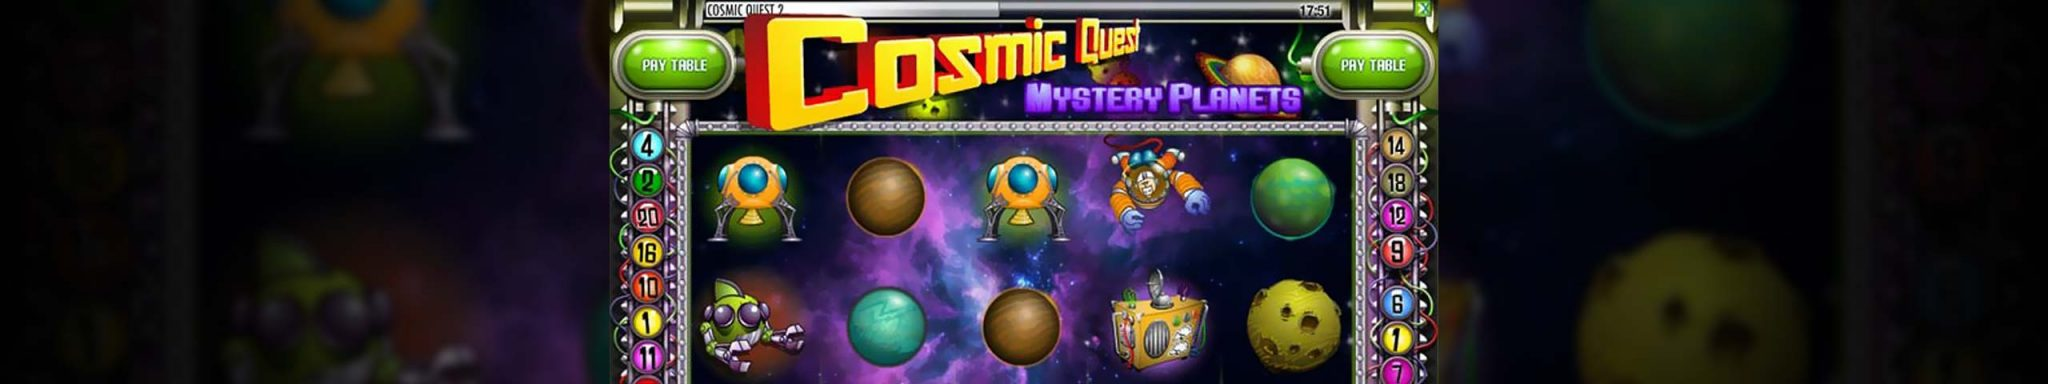 Cosmic Quest: Mystery planets